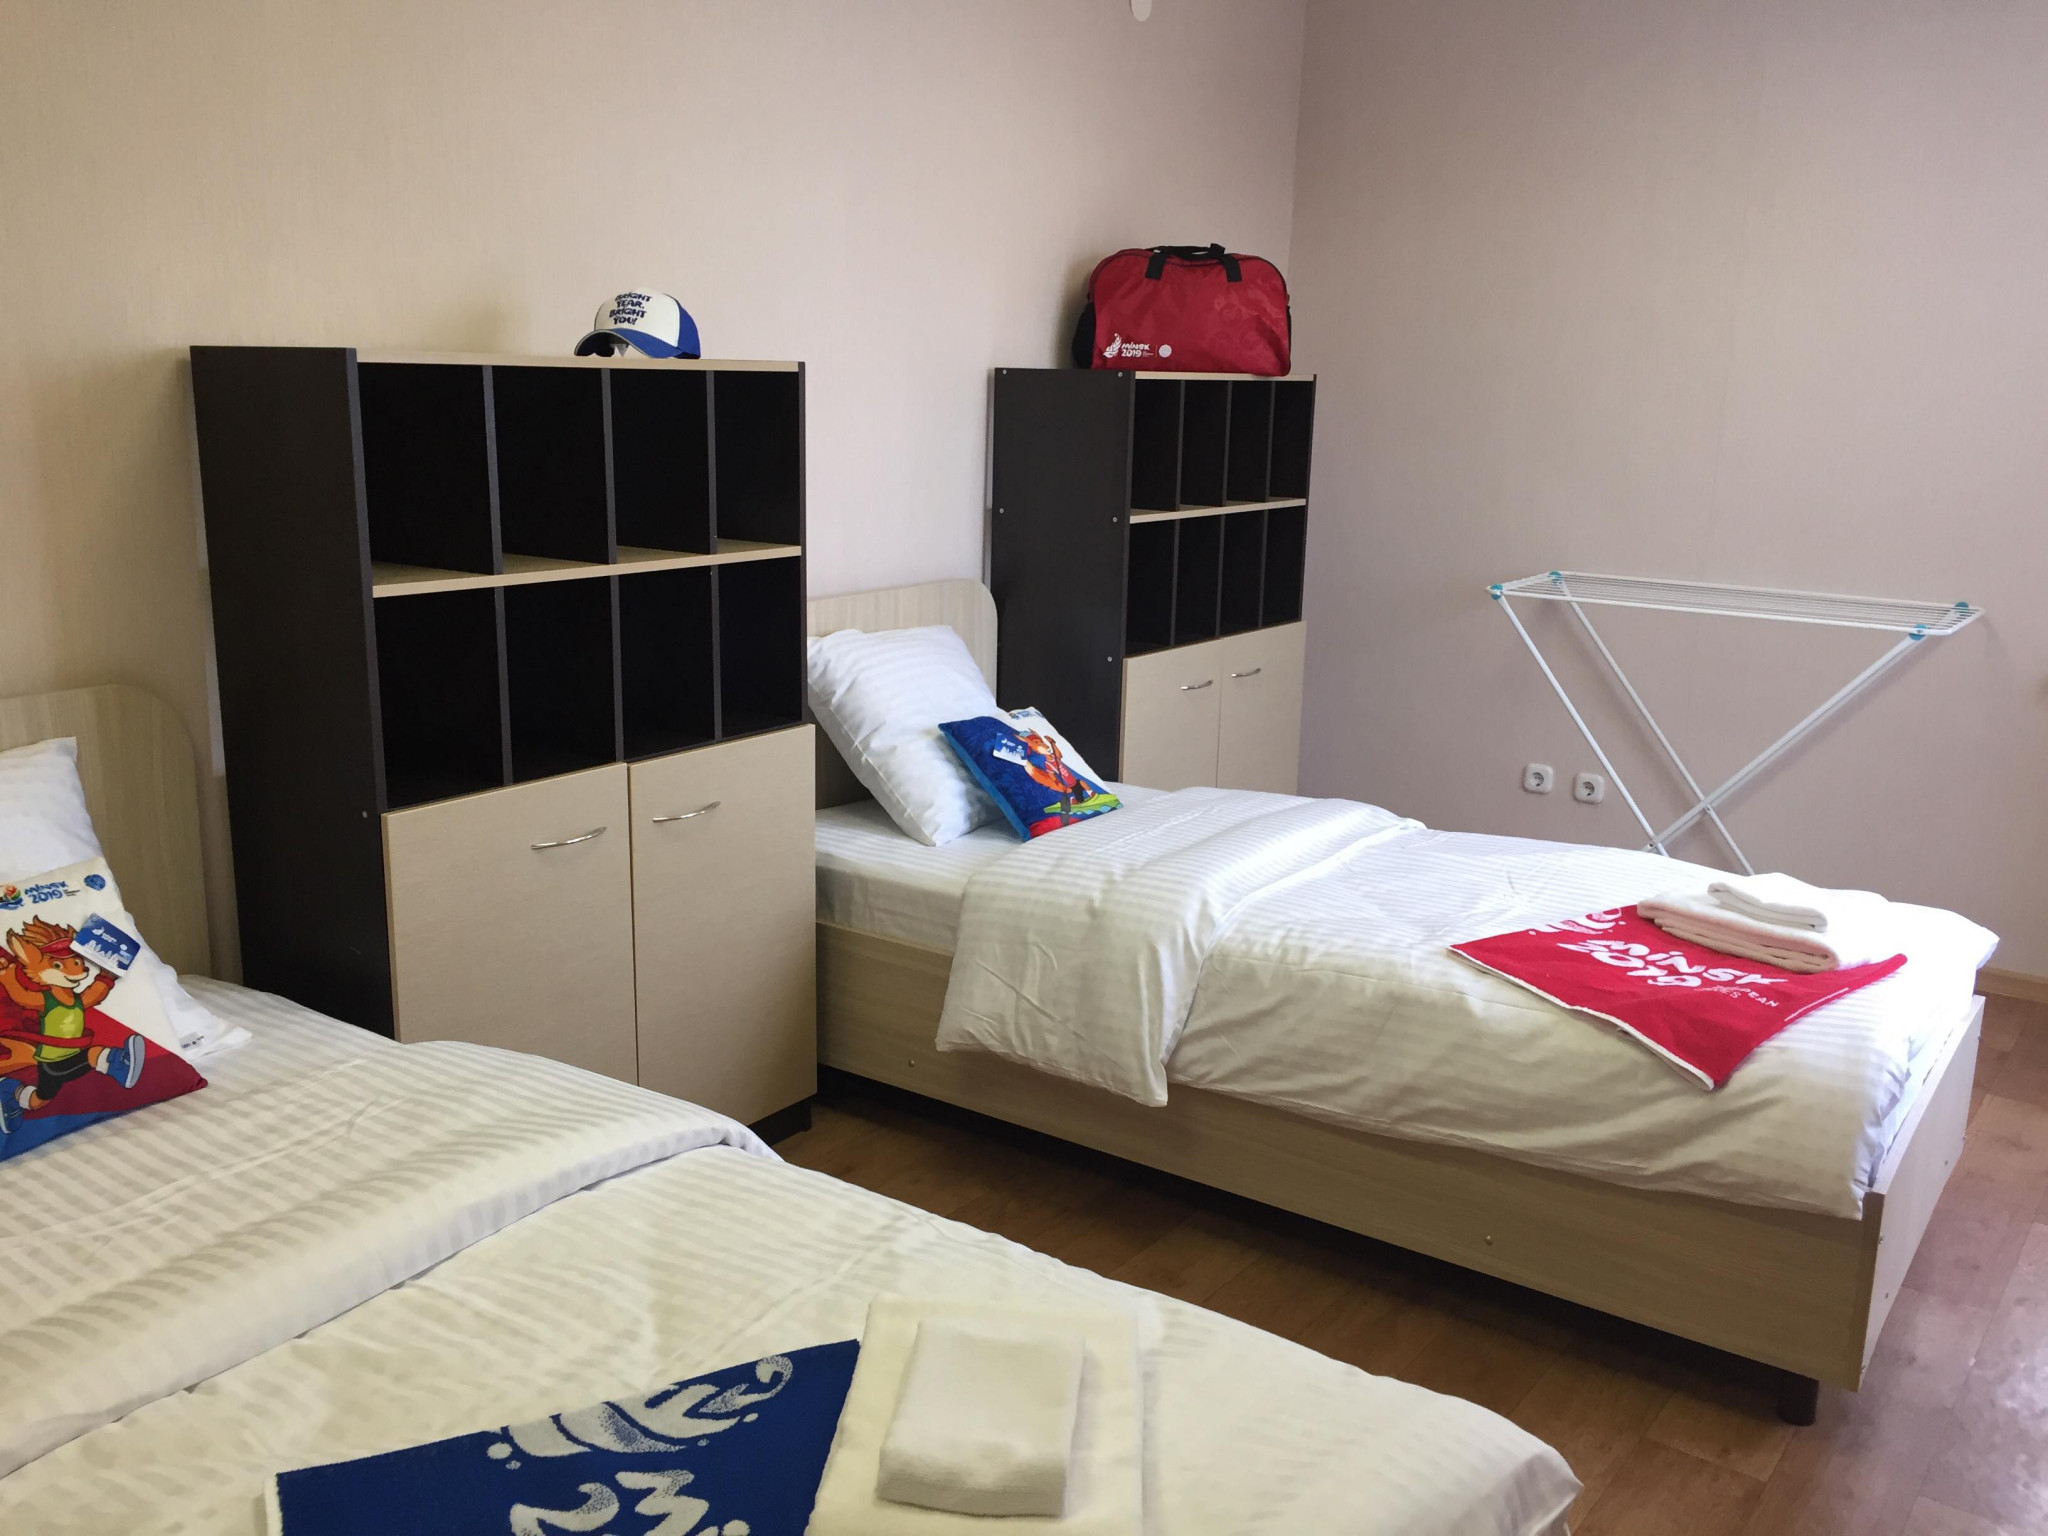 After Minsk 2019 the Athletes' Village will return to being a halls of residence for students of Medycynski University ©ITG